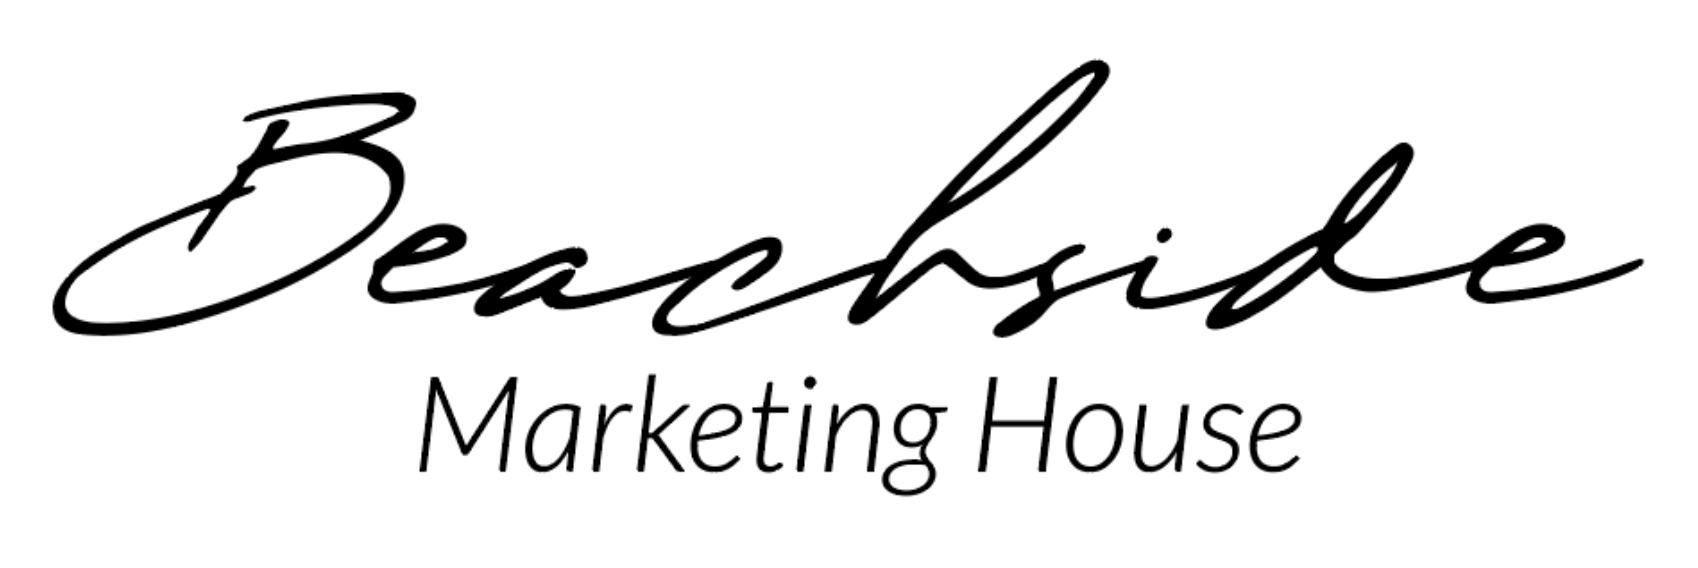 Beachside Marketing House